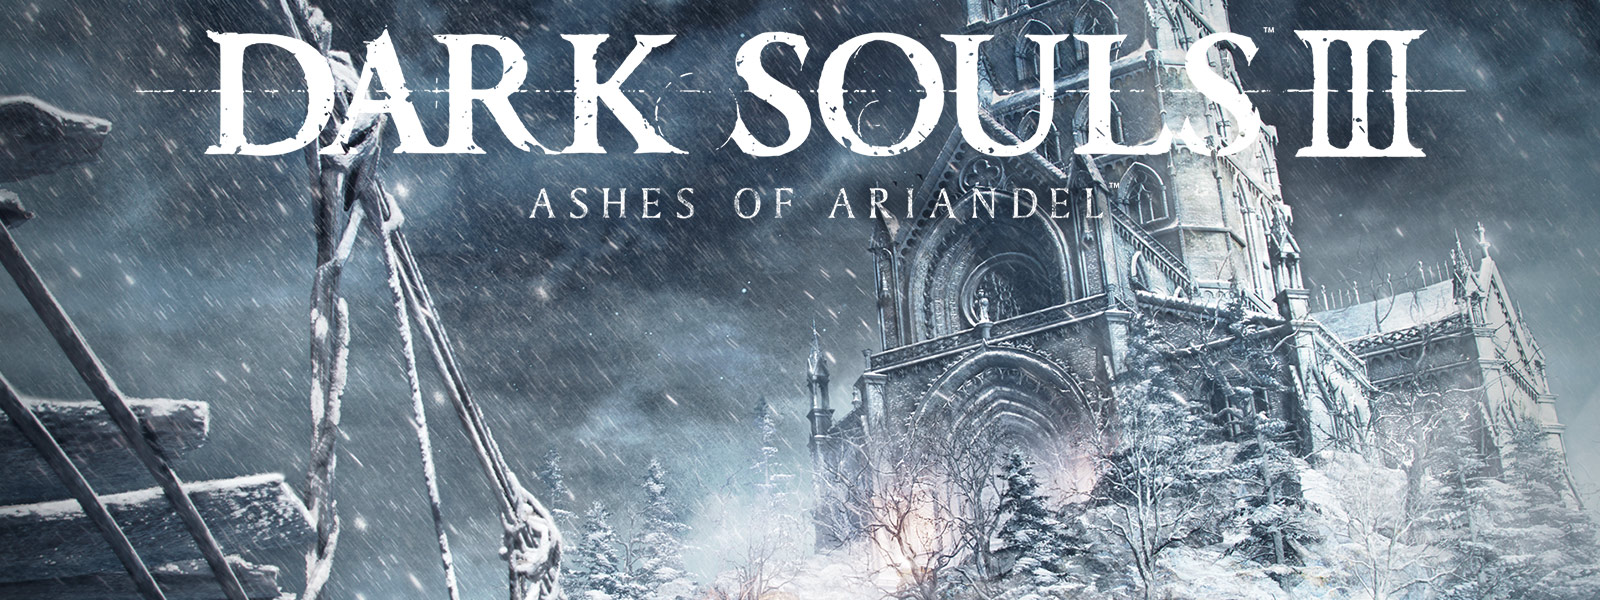 Dark Souls 3 The Ashes of Ariendel DLC